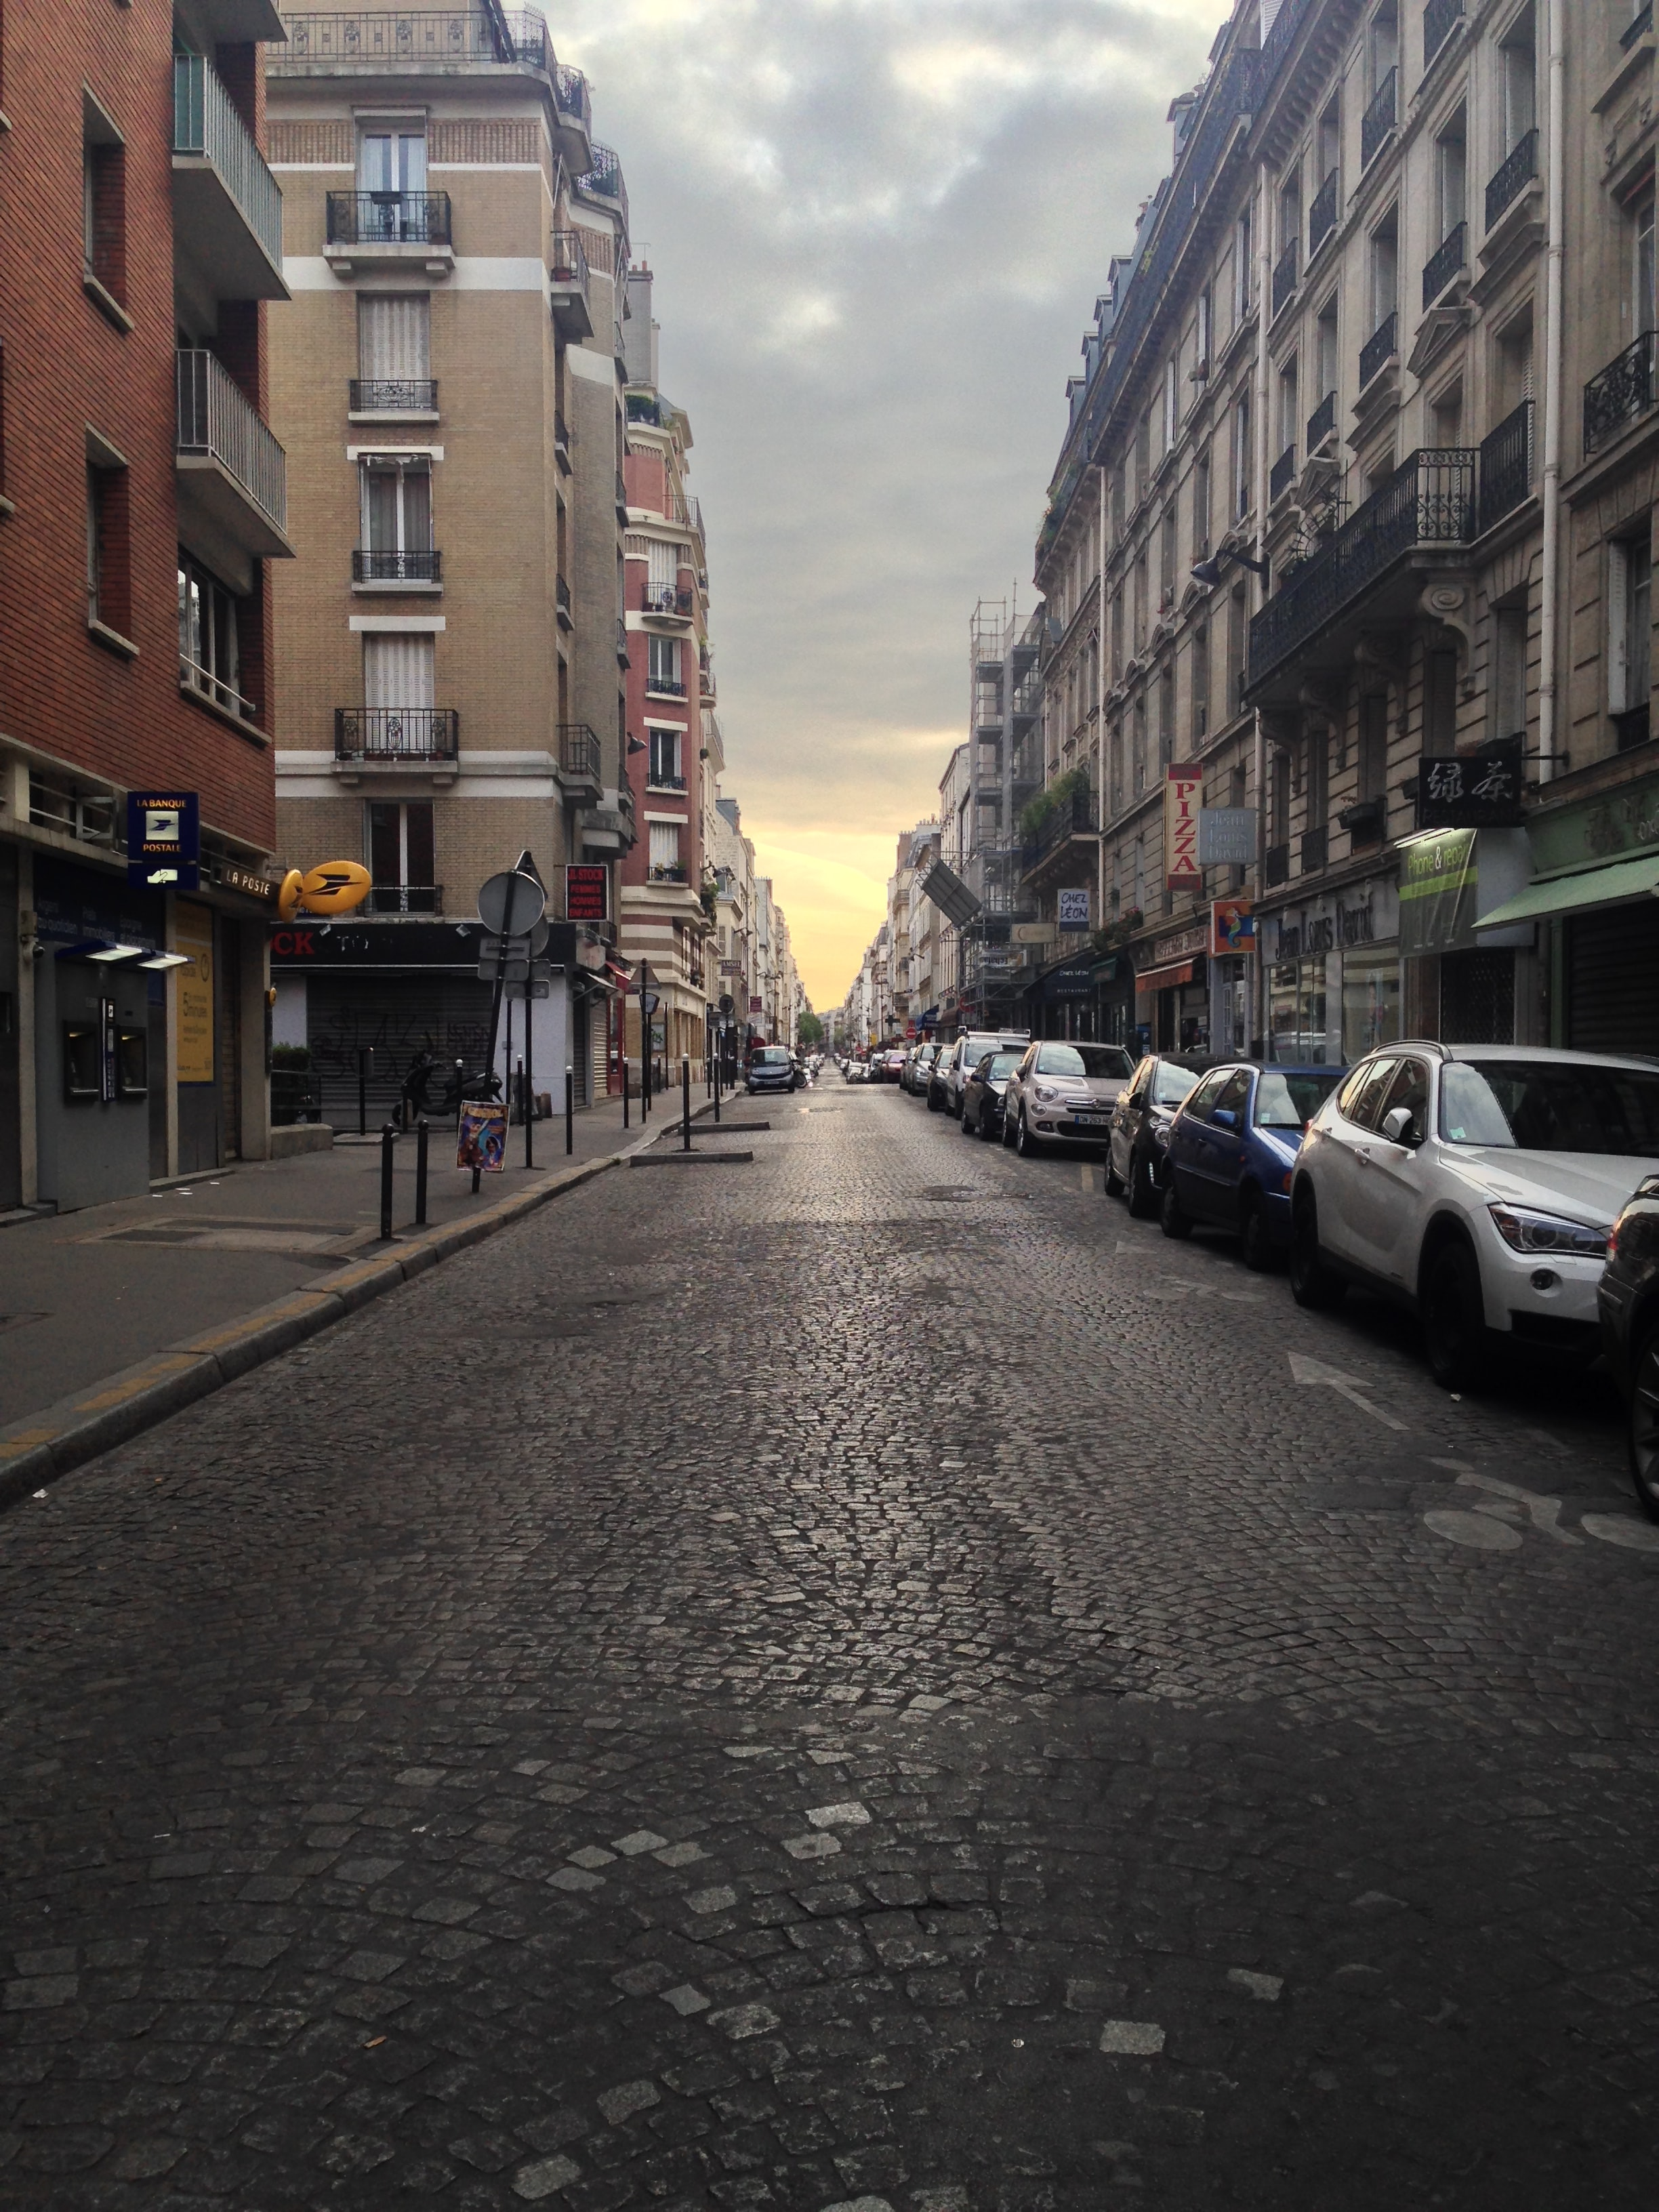 A cobblestone city street with urban buildings in Paris, France.